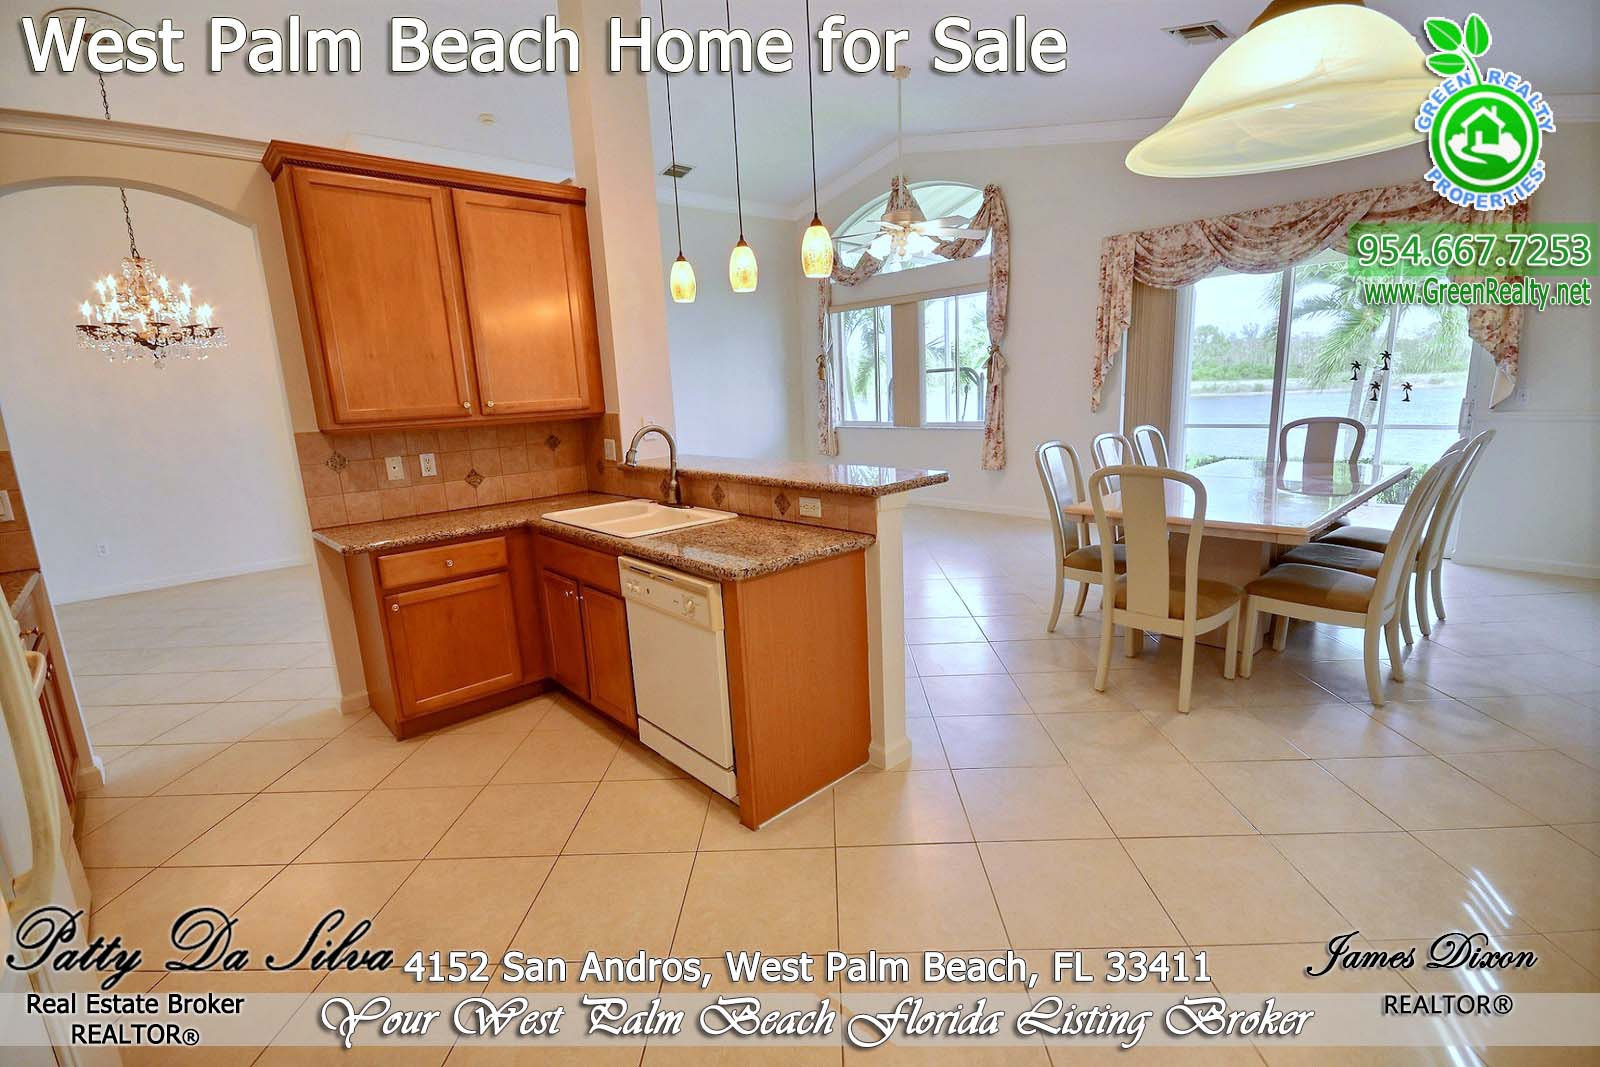 West Palm Beach Real Estate - 4152 San Andros (13)_1